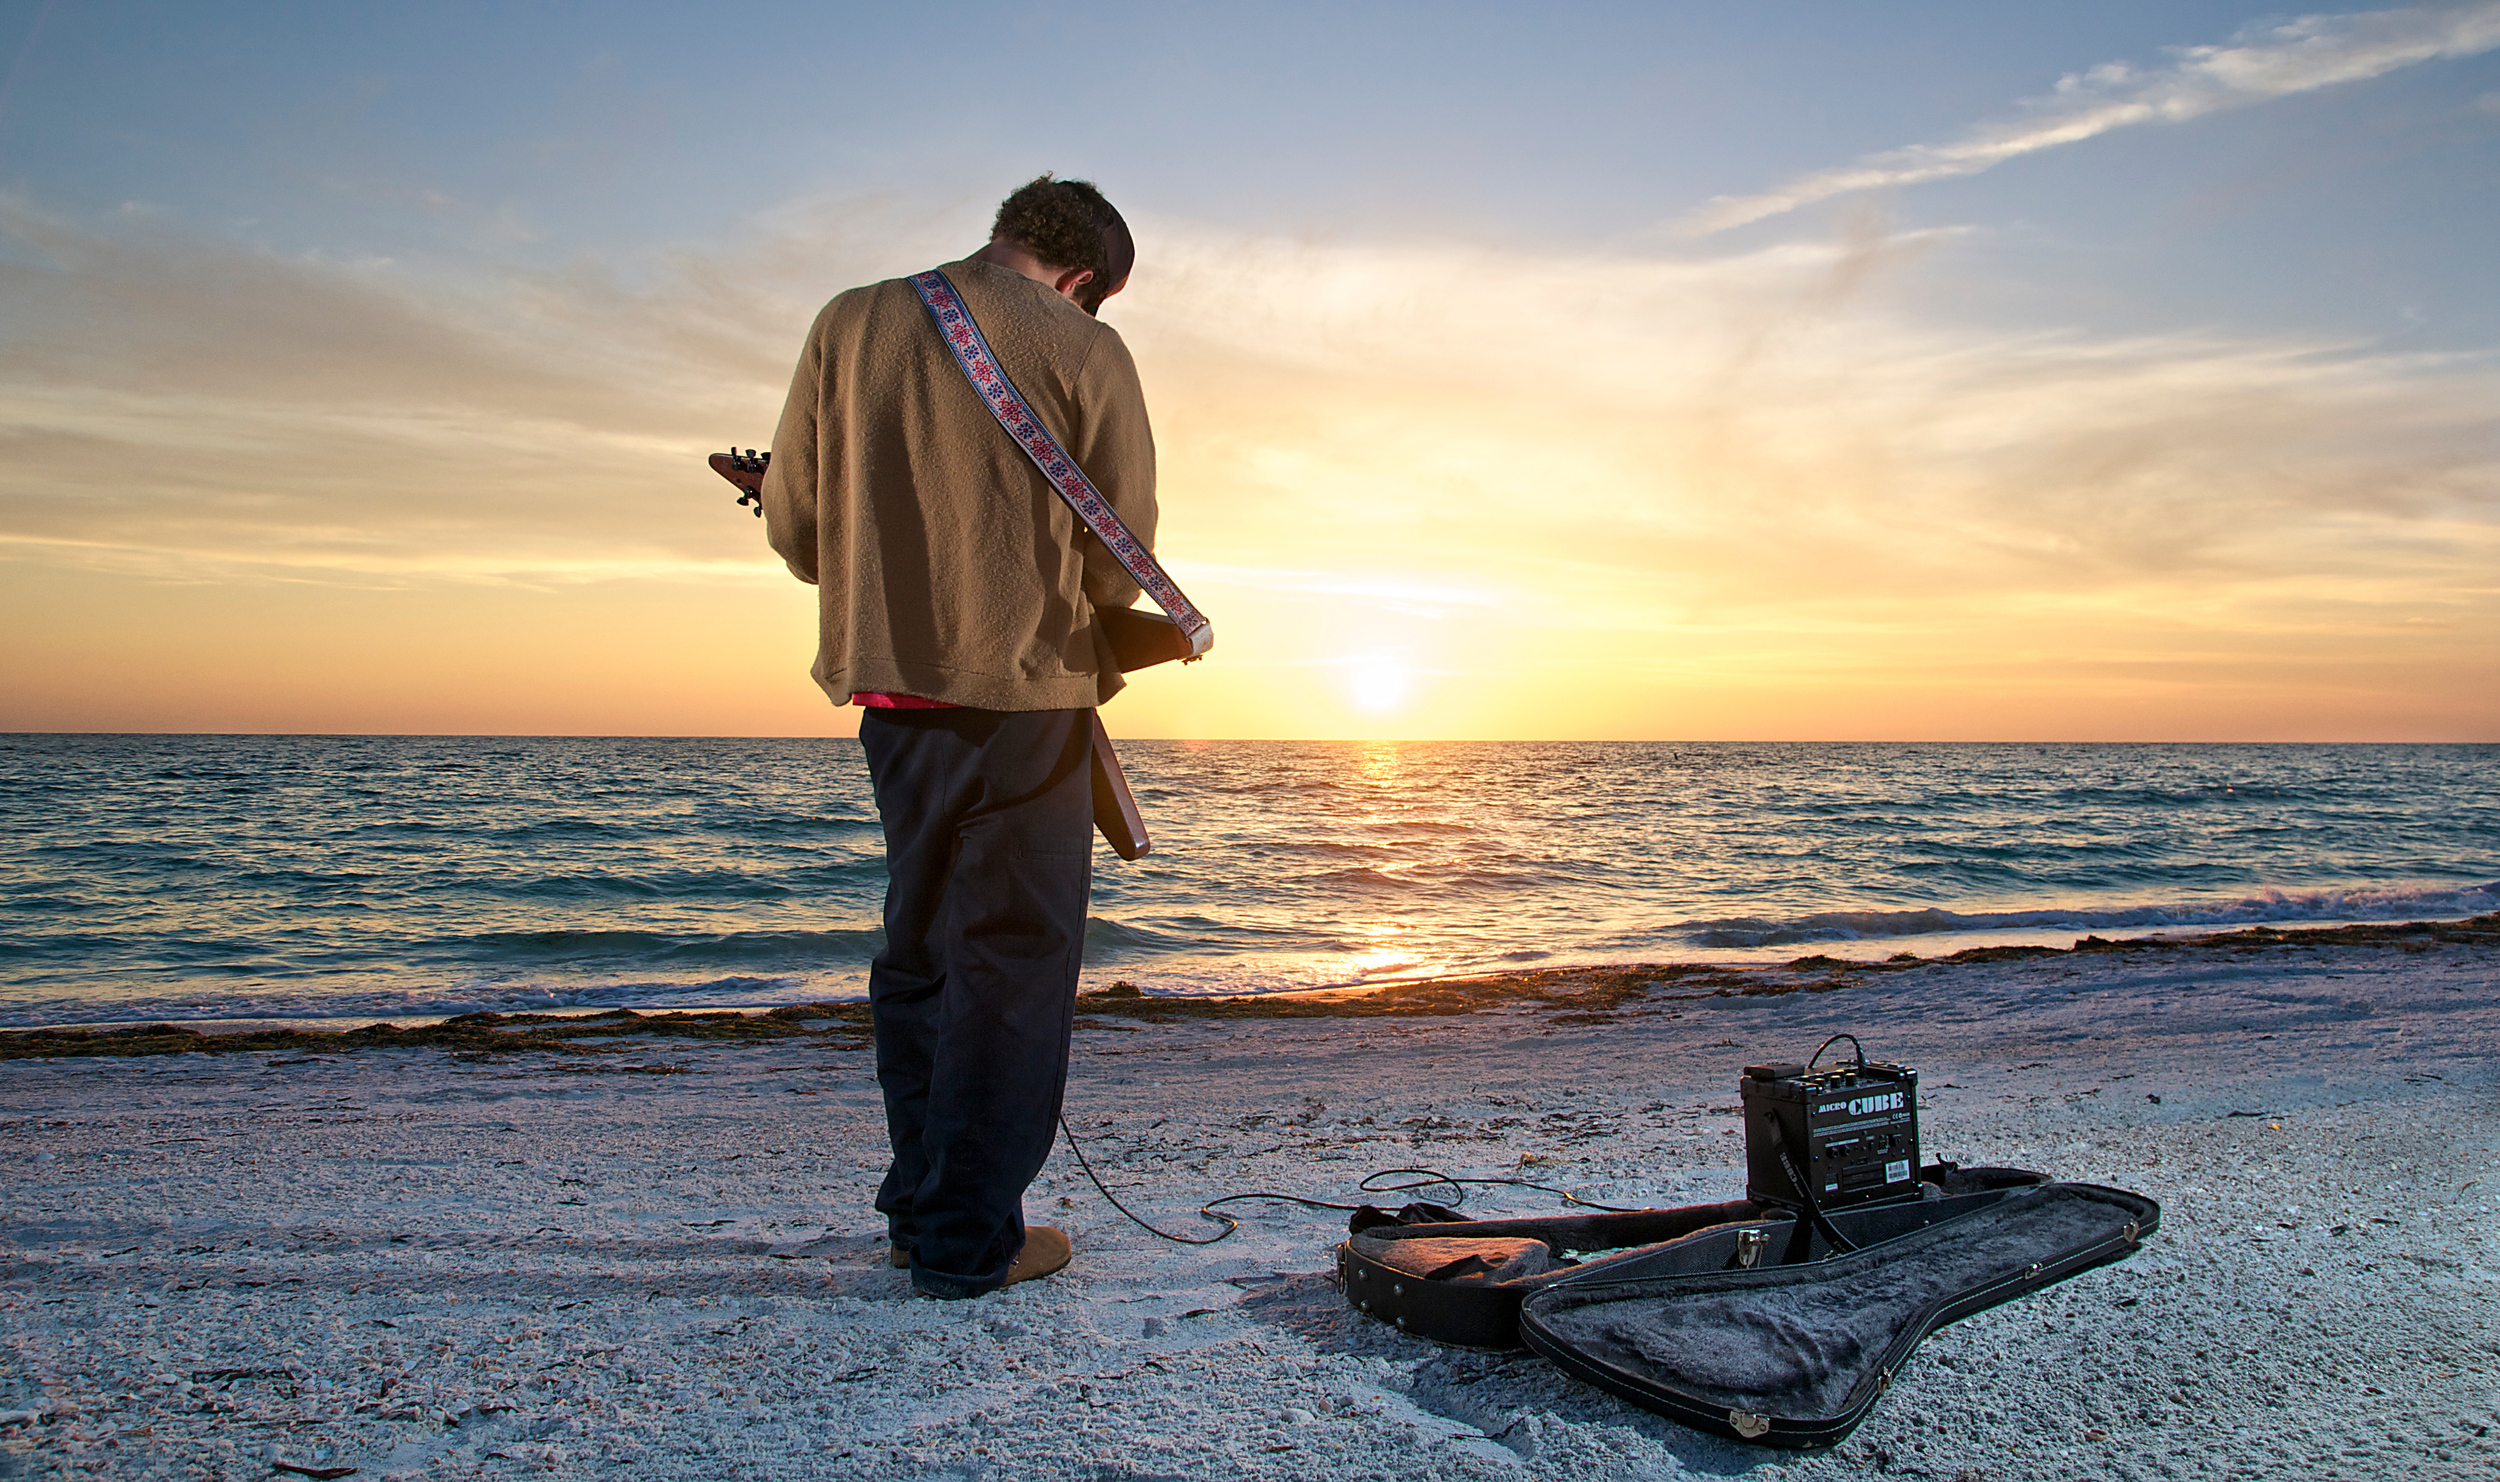 guitarist-beach-album-cover-sunset-st-petersburg-florida-commercial-photography-full-1.jpg